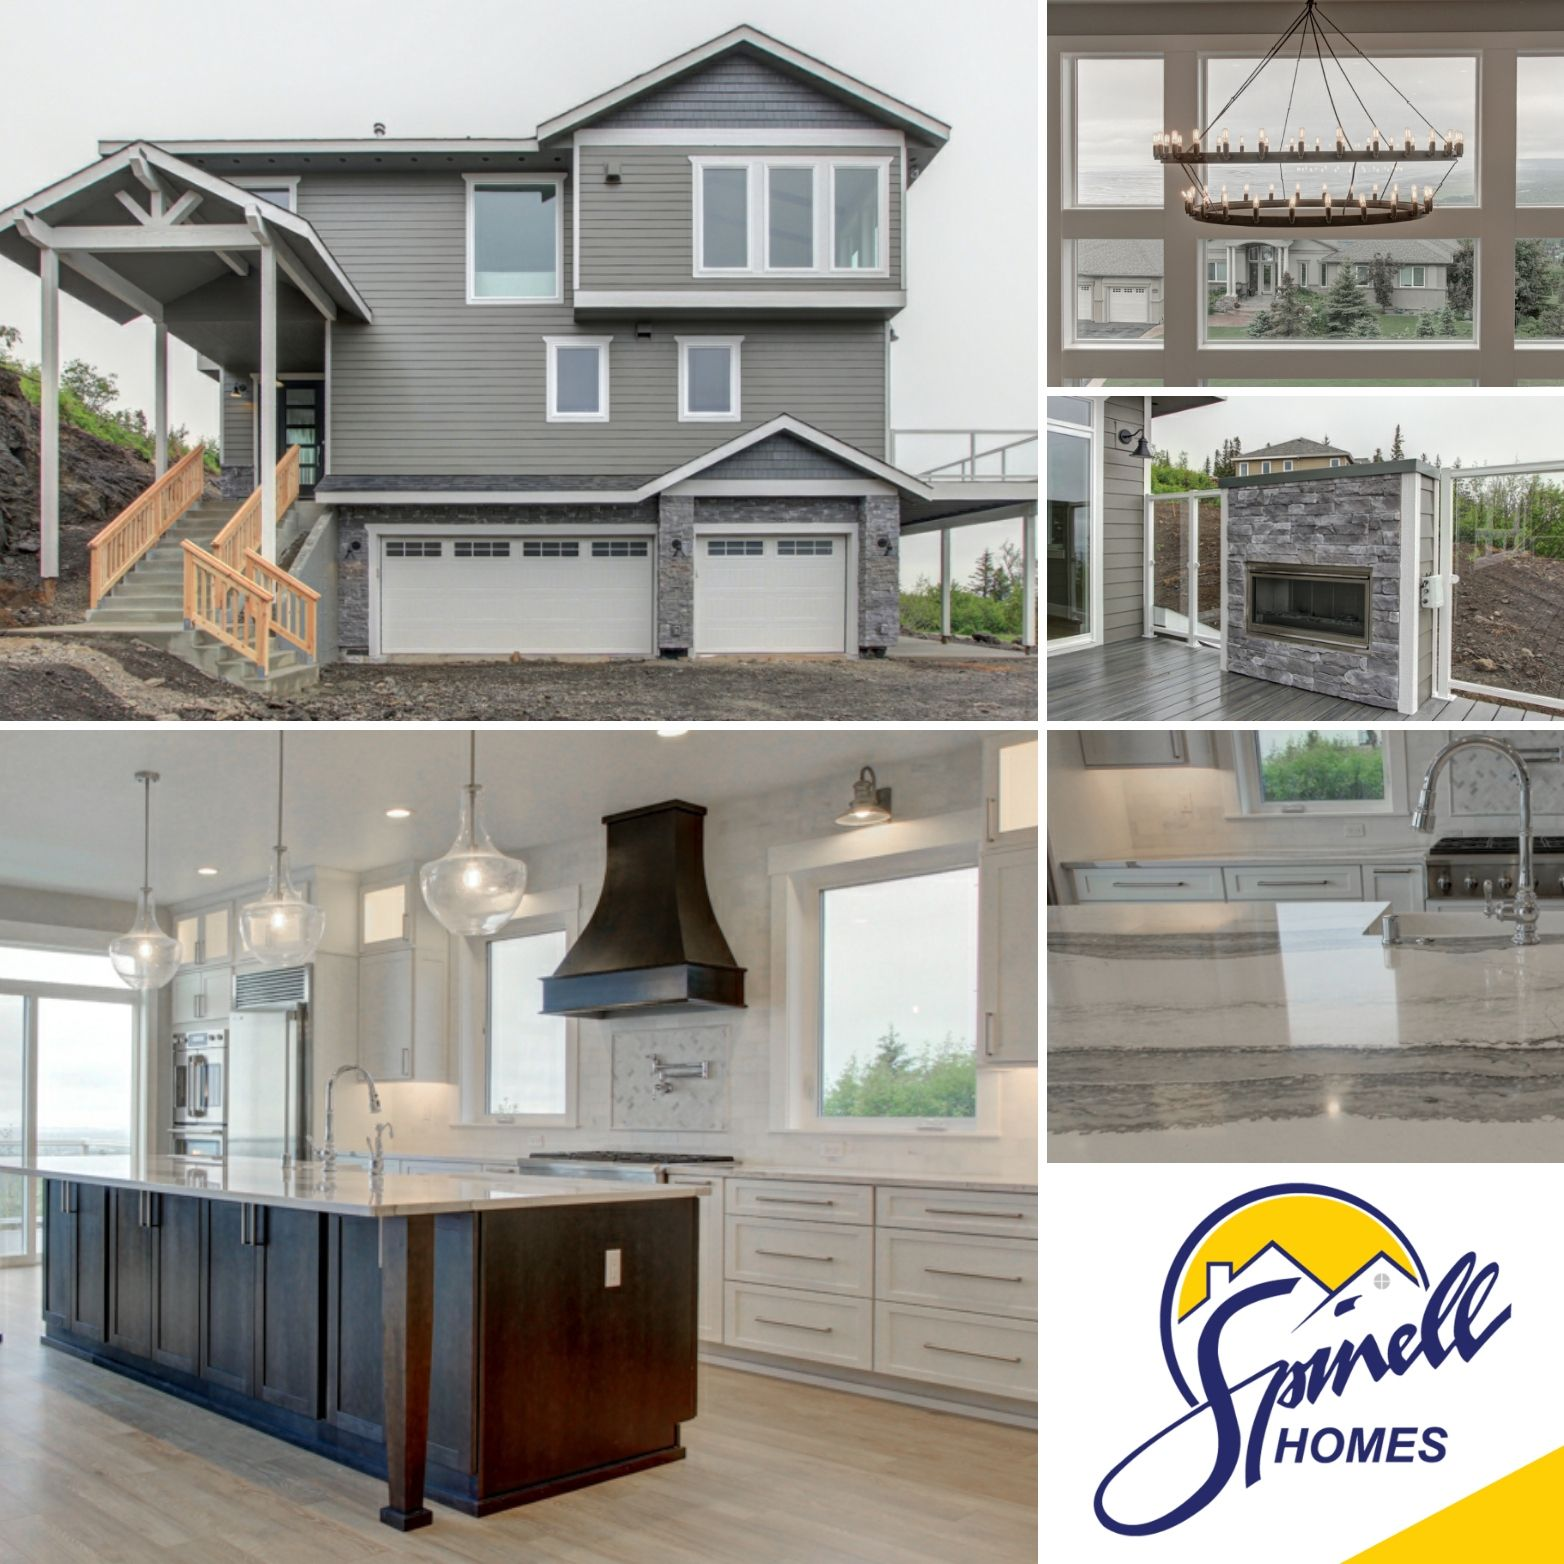 Spinell Homes Custom Hillside Home In Anchorage Alaska In 2020 Build Your Dream Home Custom Homes Home